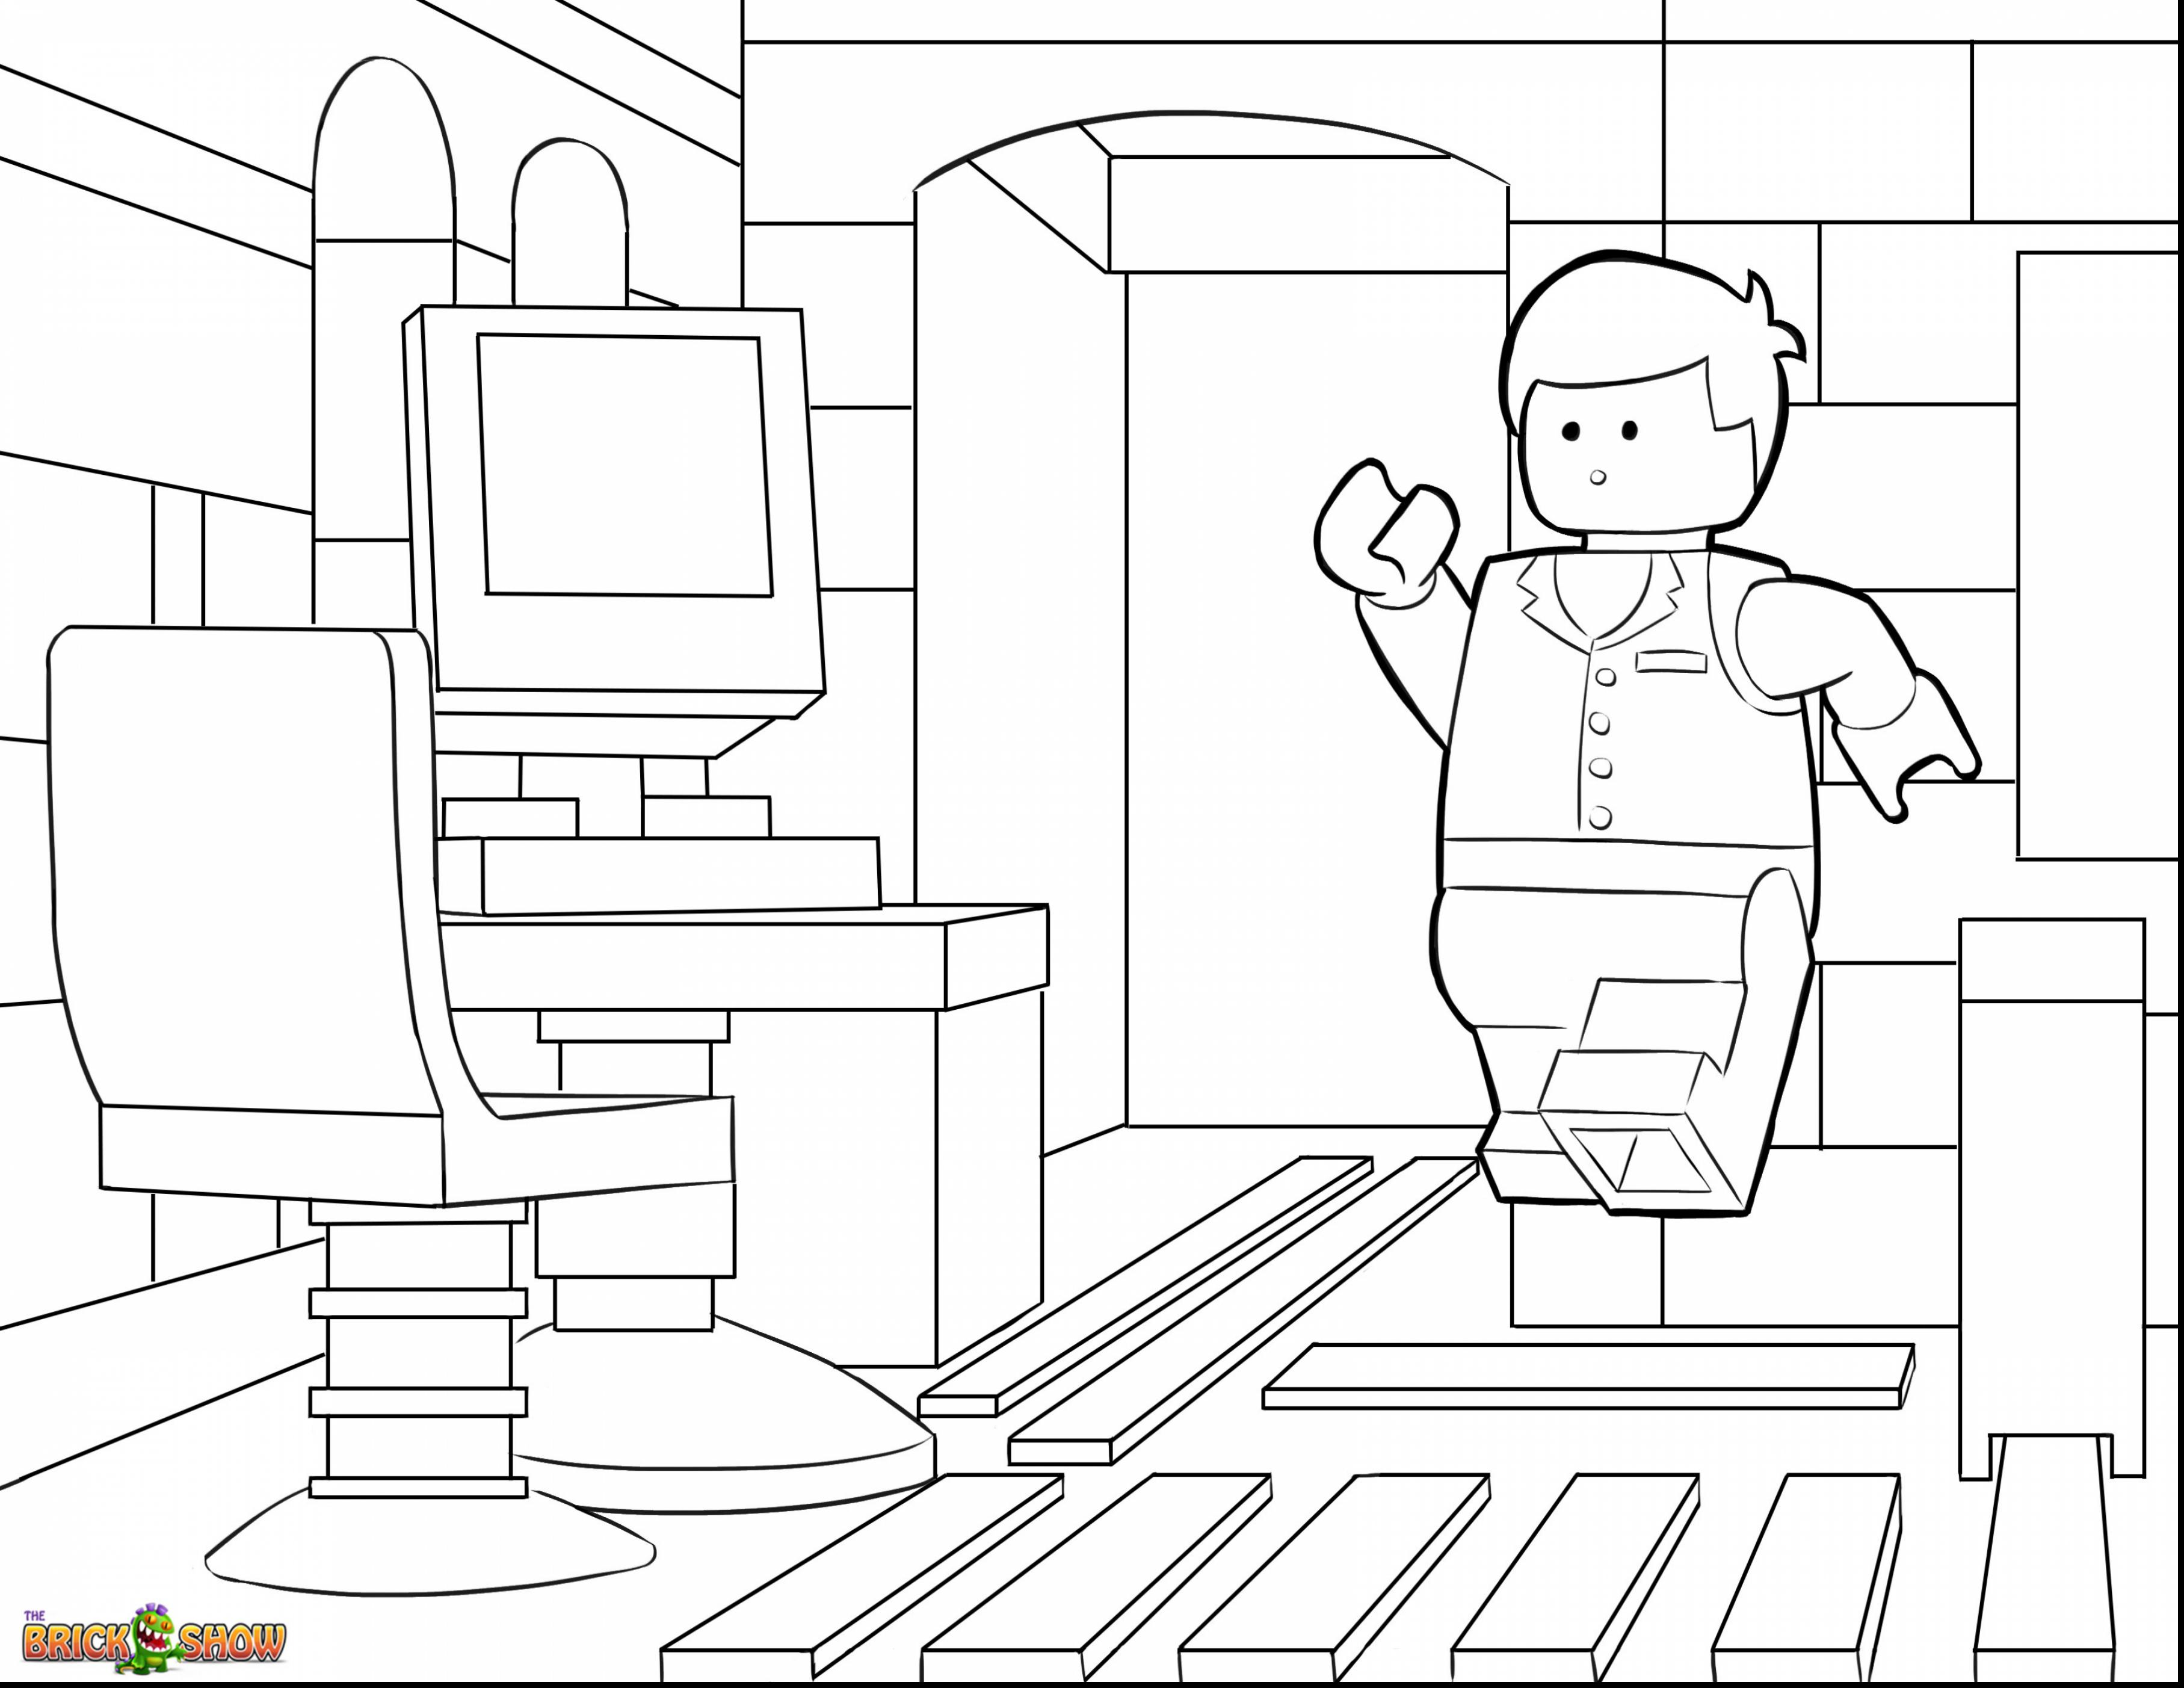 lego movie emmet coloring page lego movie coloring pages at getdrawings free download movie emmet lego page coloring